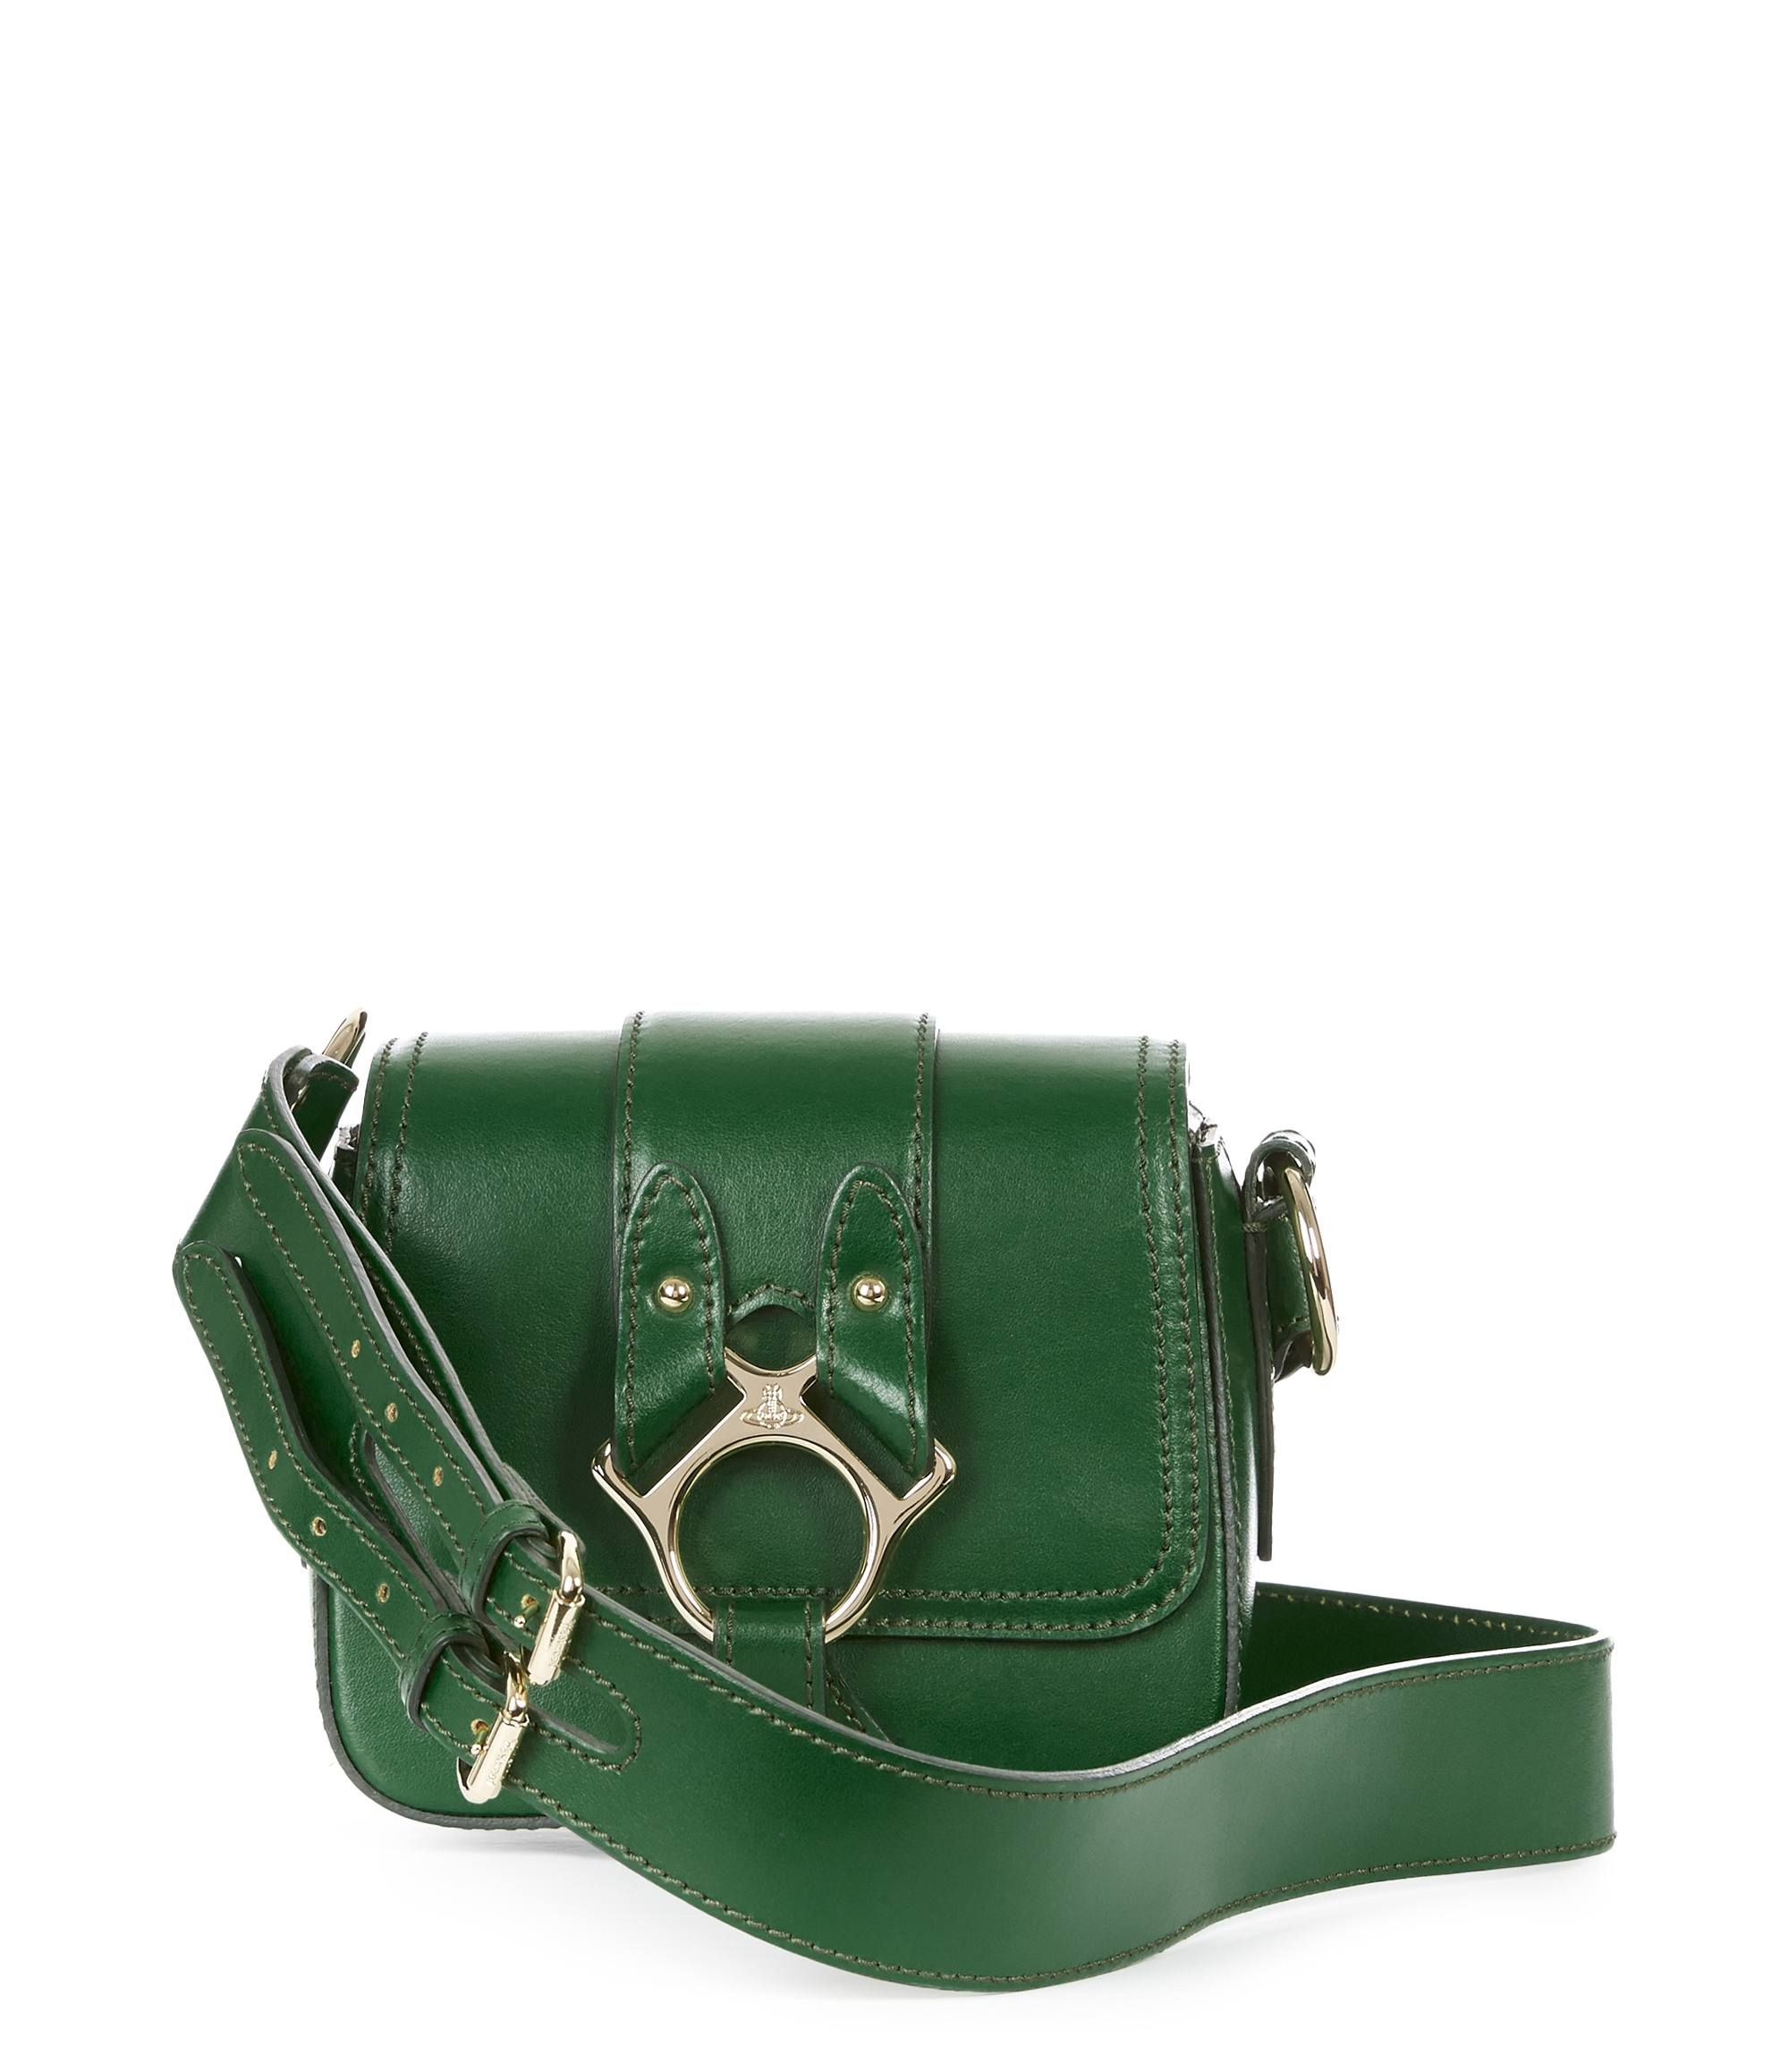 dfad5c3dfa VIVIENNE WESTWOOD Small Folly Saddle Bag 43030021 Green. #viviennewestwood # bags #leather #